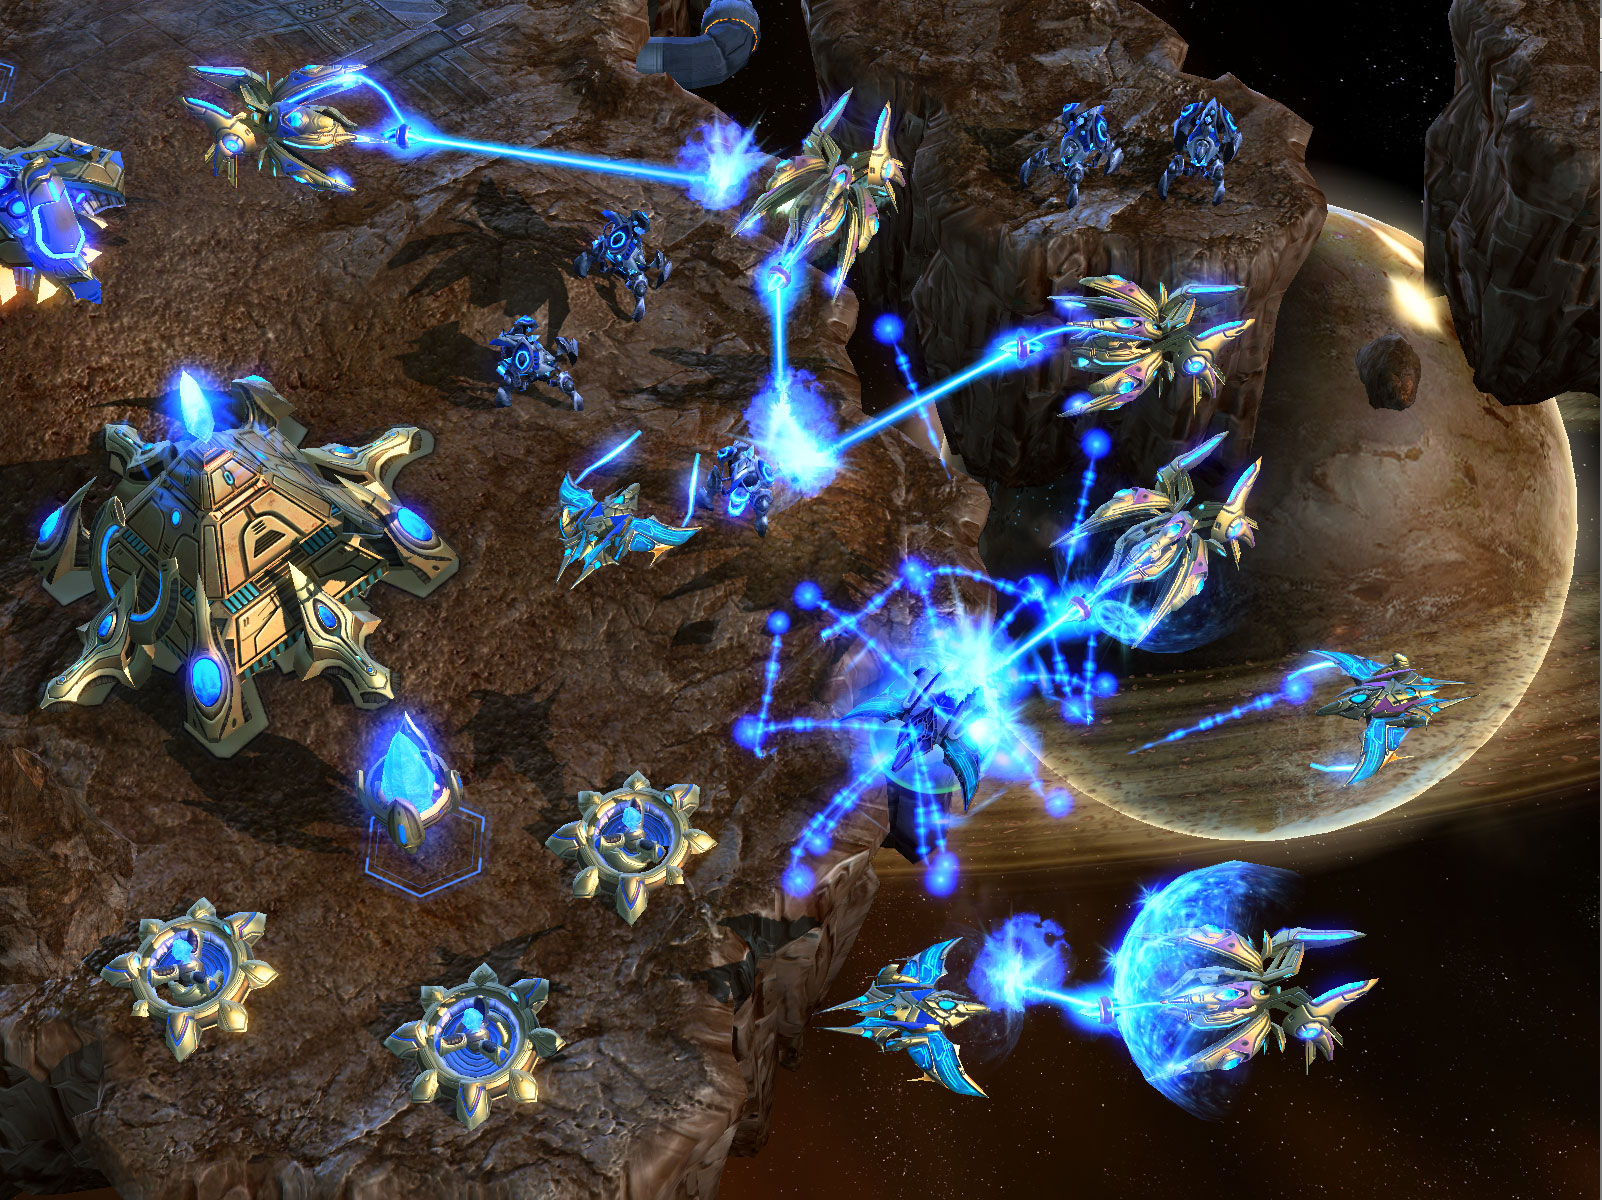 Starcraft II screenshots.